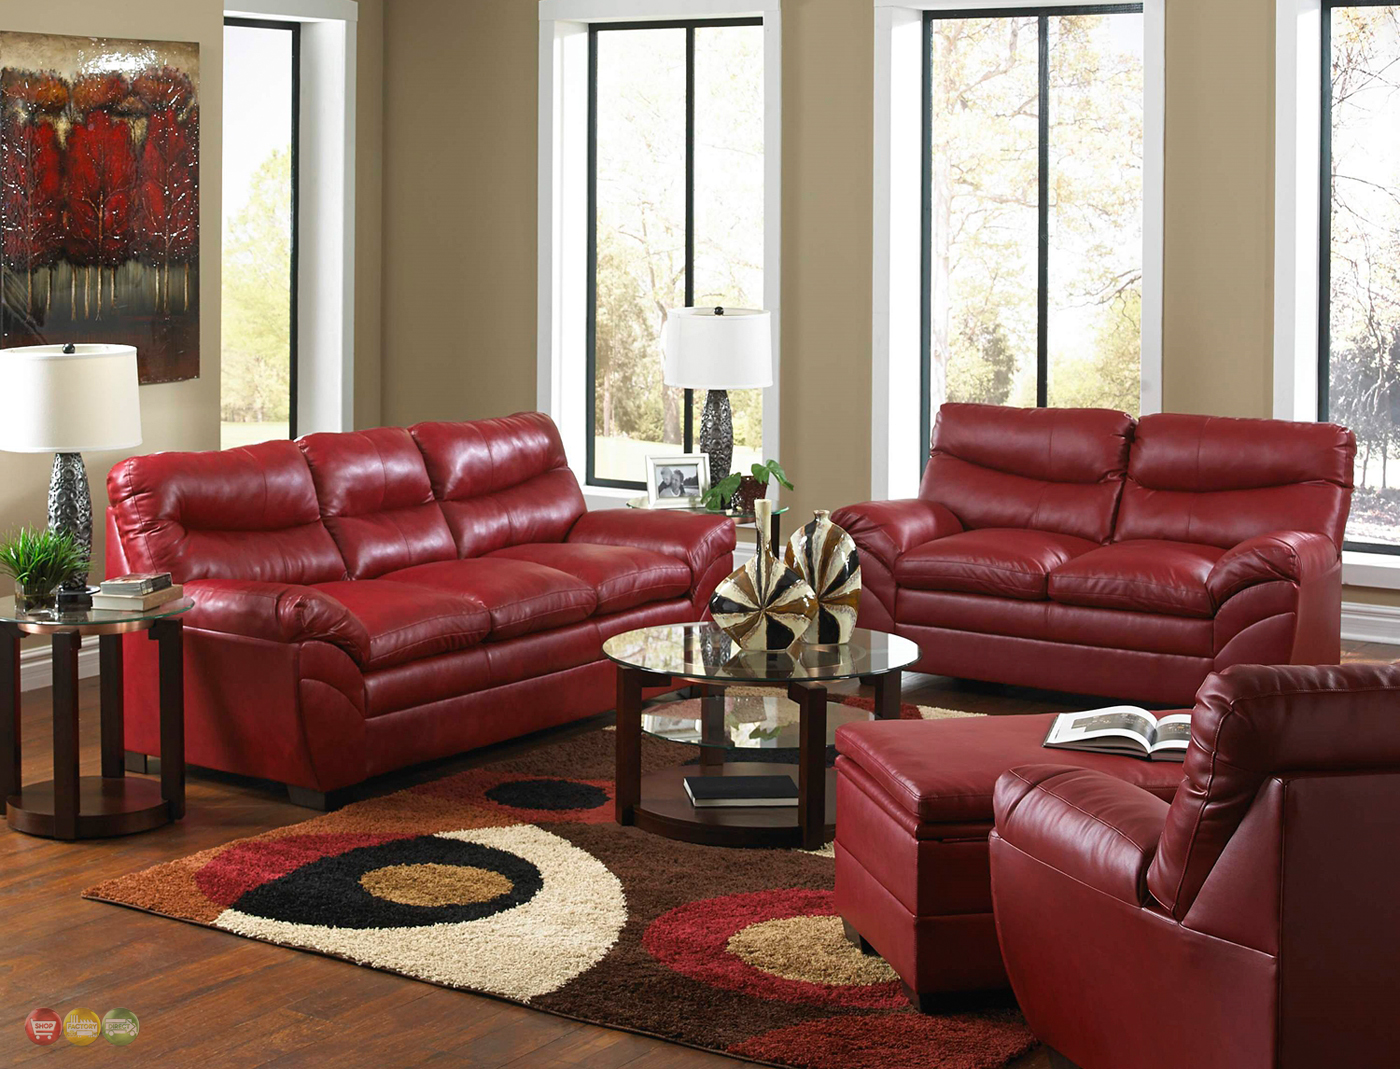 Casual Contemporary Red Bonded Leather Sofa Set Living Room Furniture Simmons